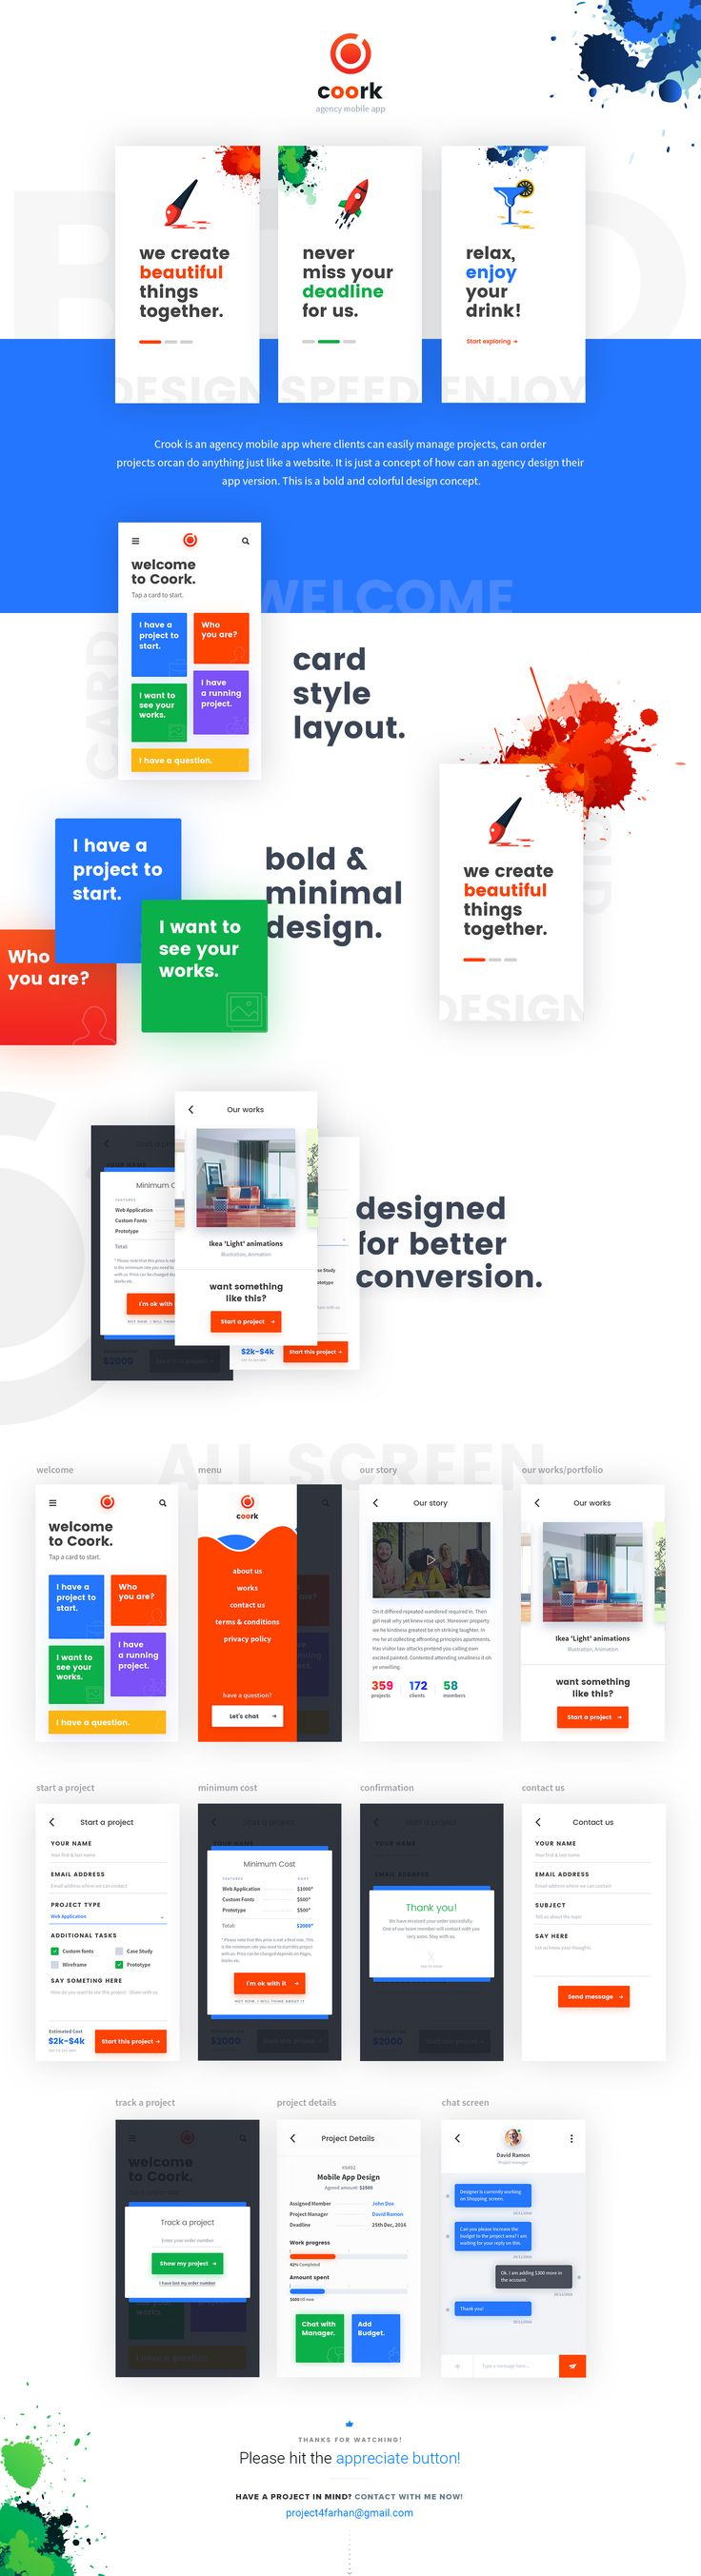 This a concept of Agency app design, who are selling their service and letting the client to manage the projects via mobile app.I have used some images from @jamesgilleard from his beautiful project.